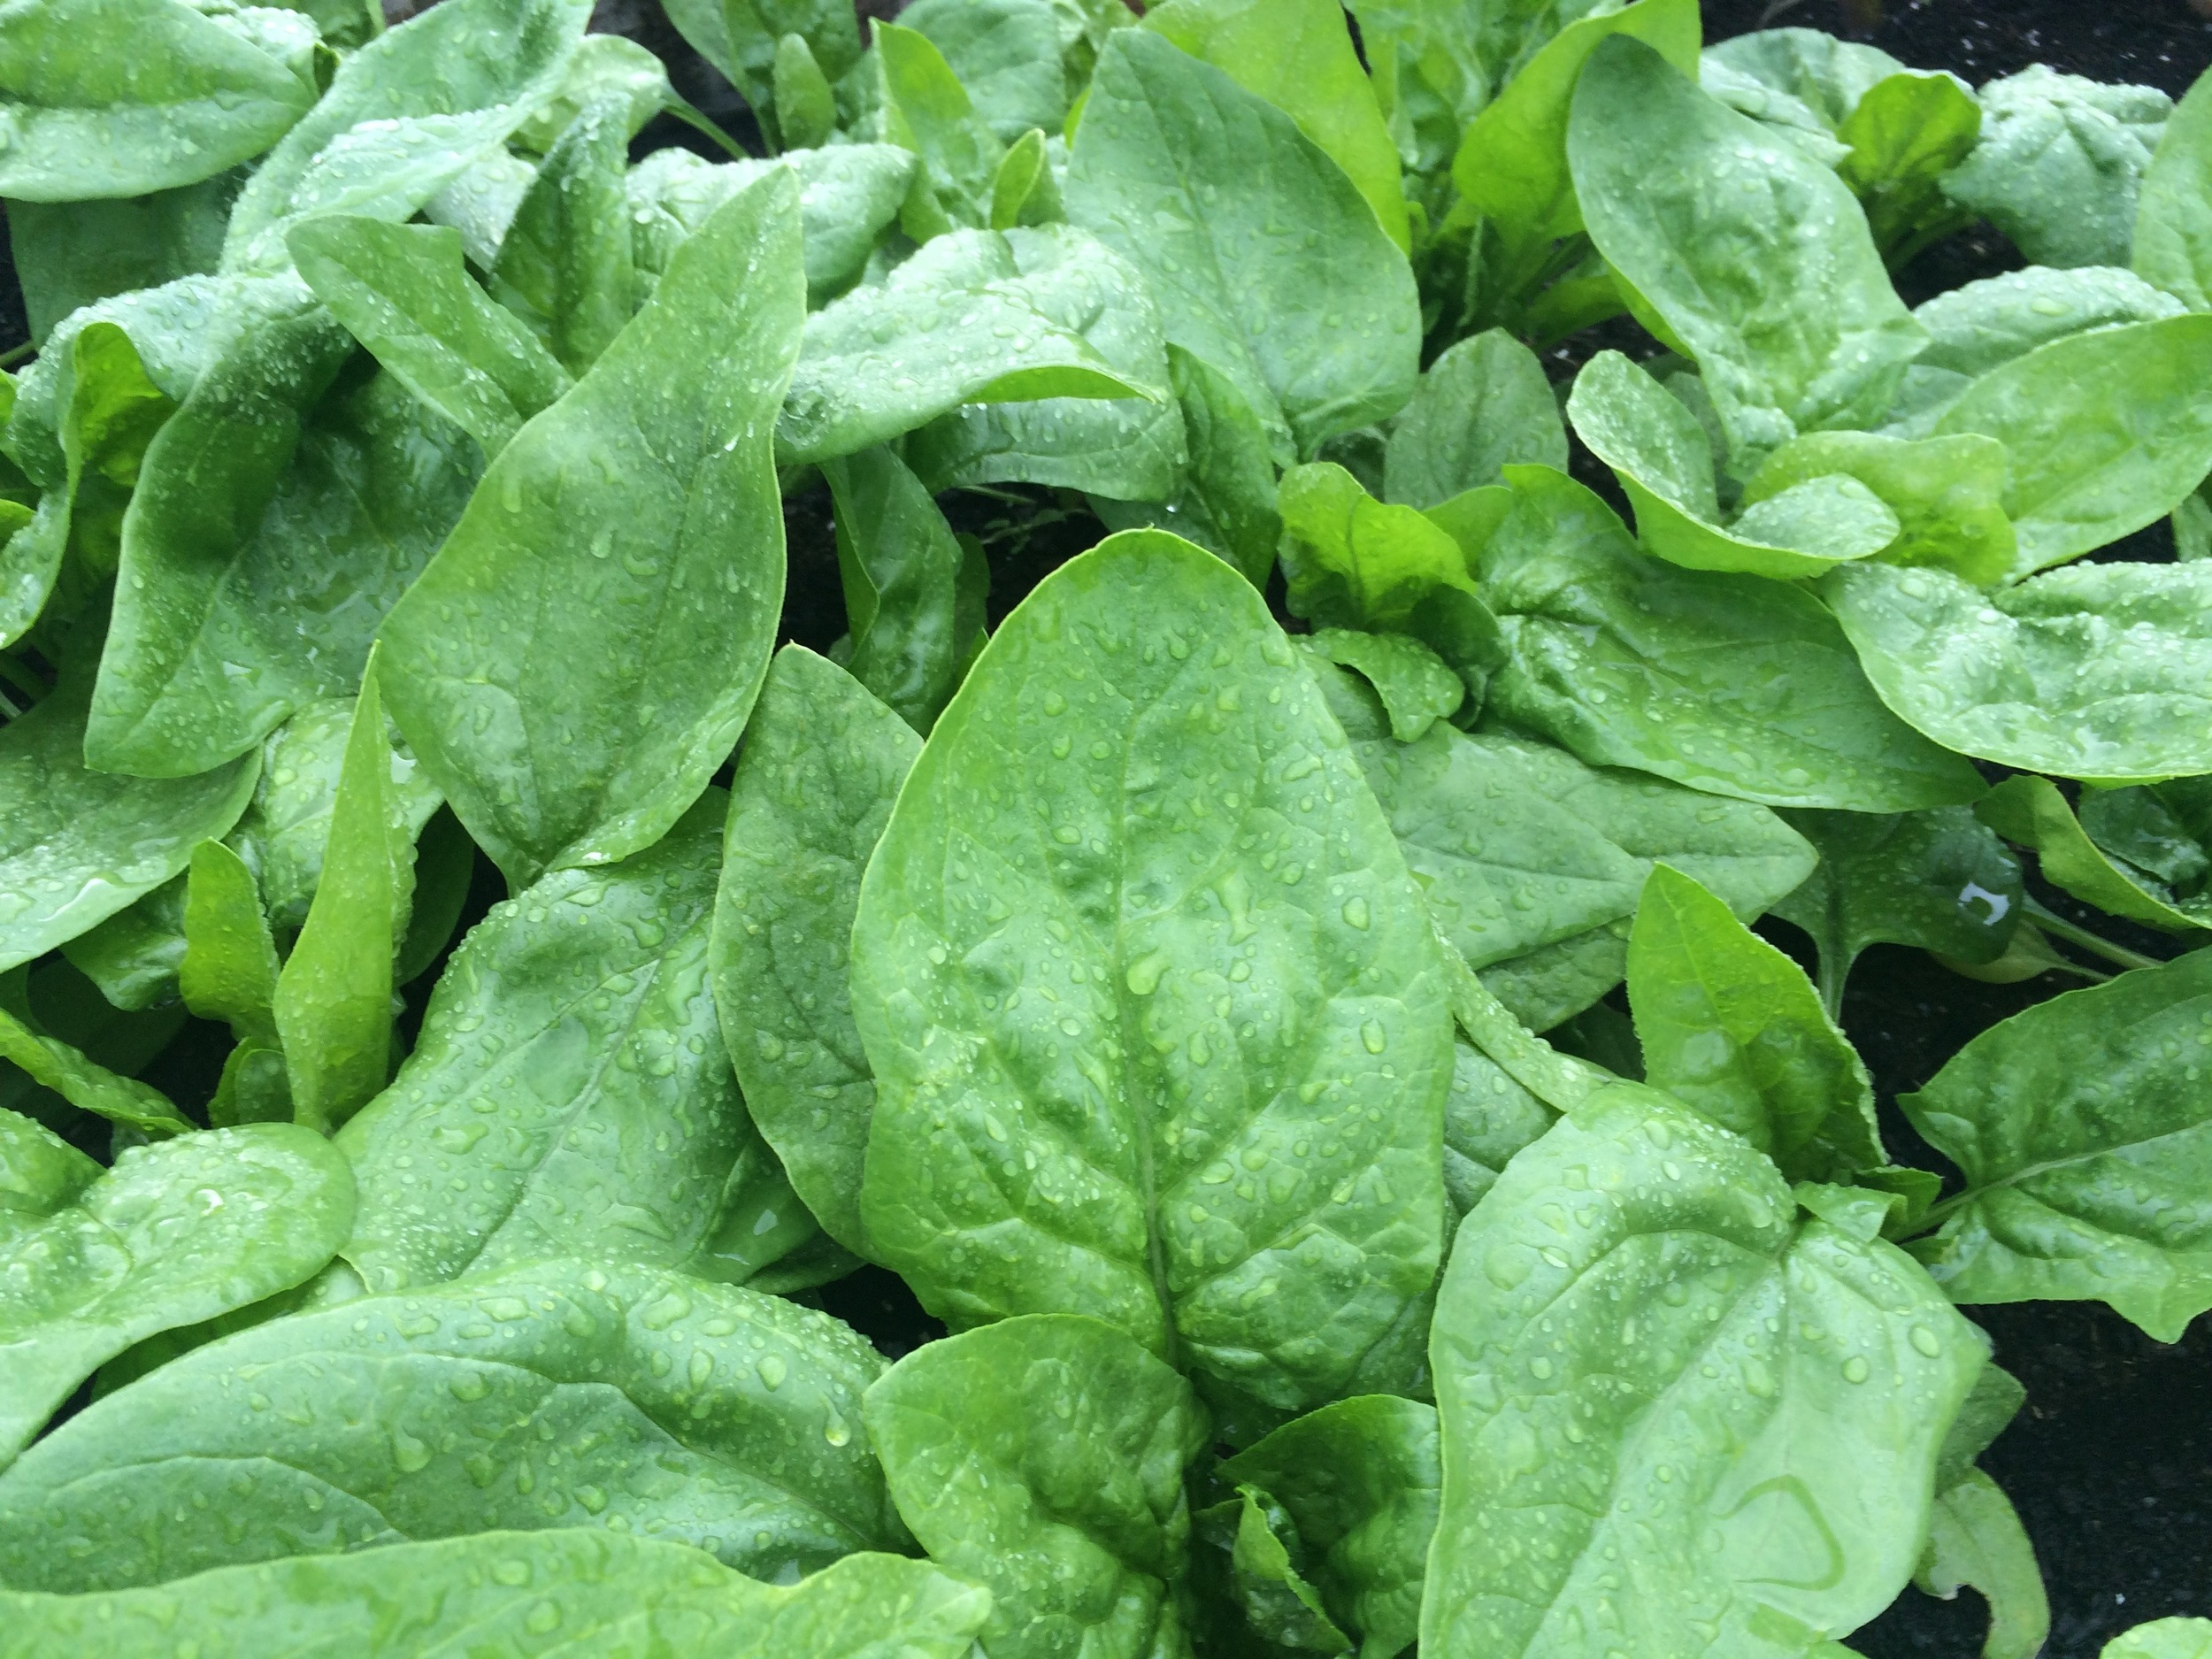 This year's crop of spinach